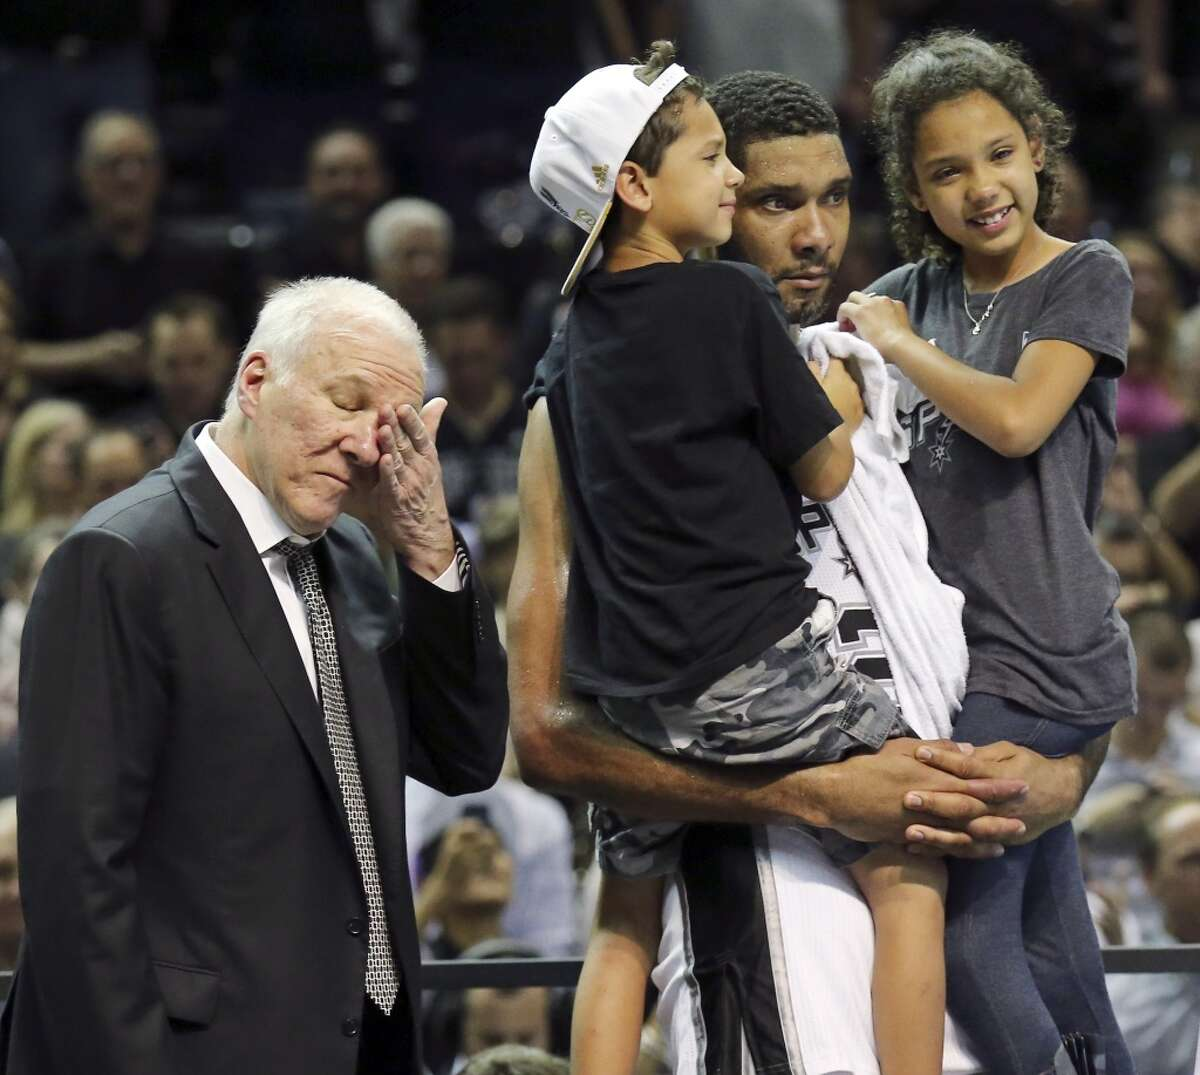 San Antonio Spurs' Tim Duncan holds his children Draven (left) and Sydney as head coach Gregg Popovich wipes away tears after Game 5 of the 2014 NBA Finals against the Miami Heat Sunday June 15, 2014 at the AT&T Center. The Spurs won 104-87.